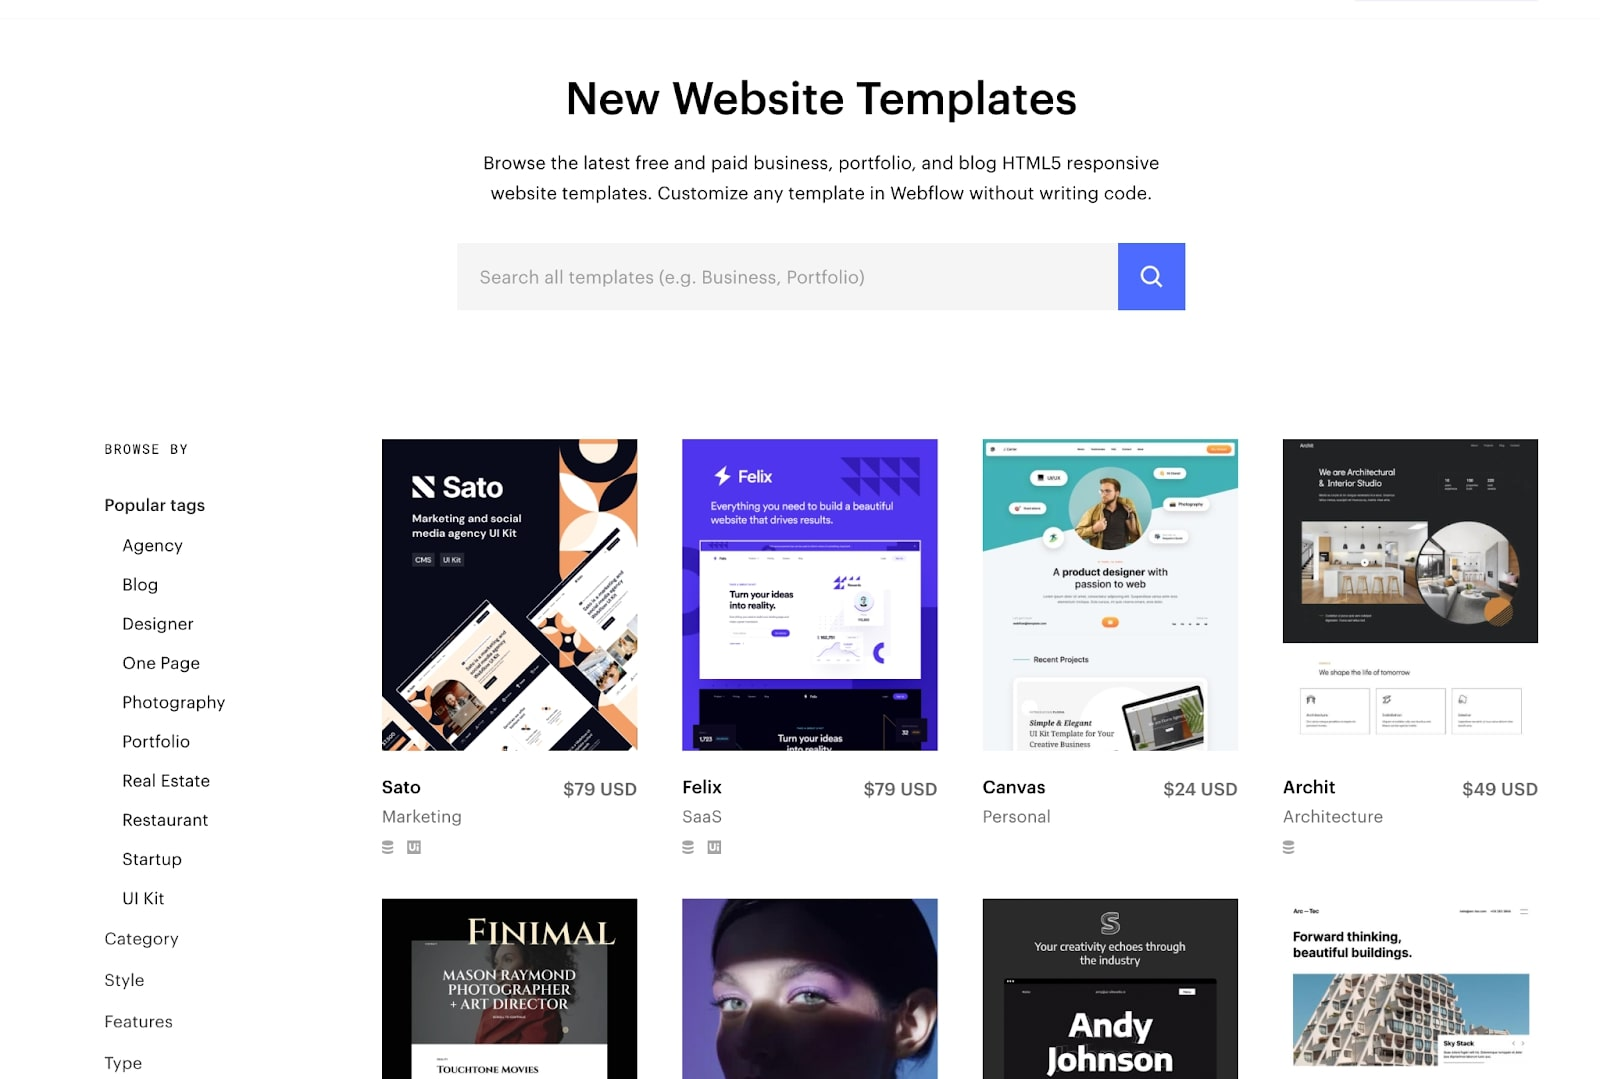 Catalog of website templates with search bar